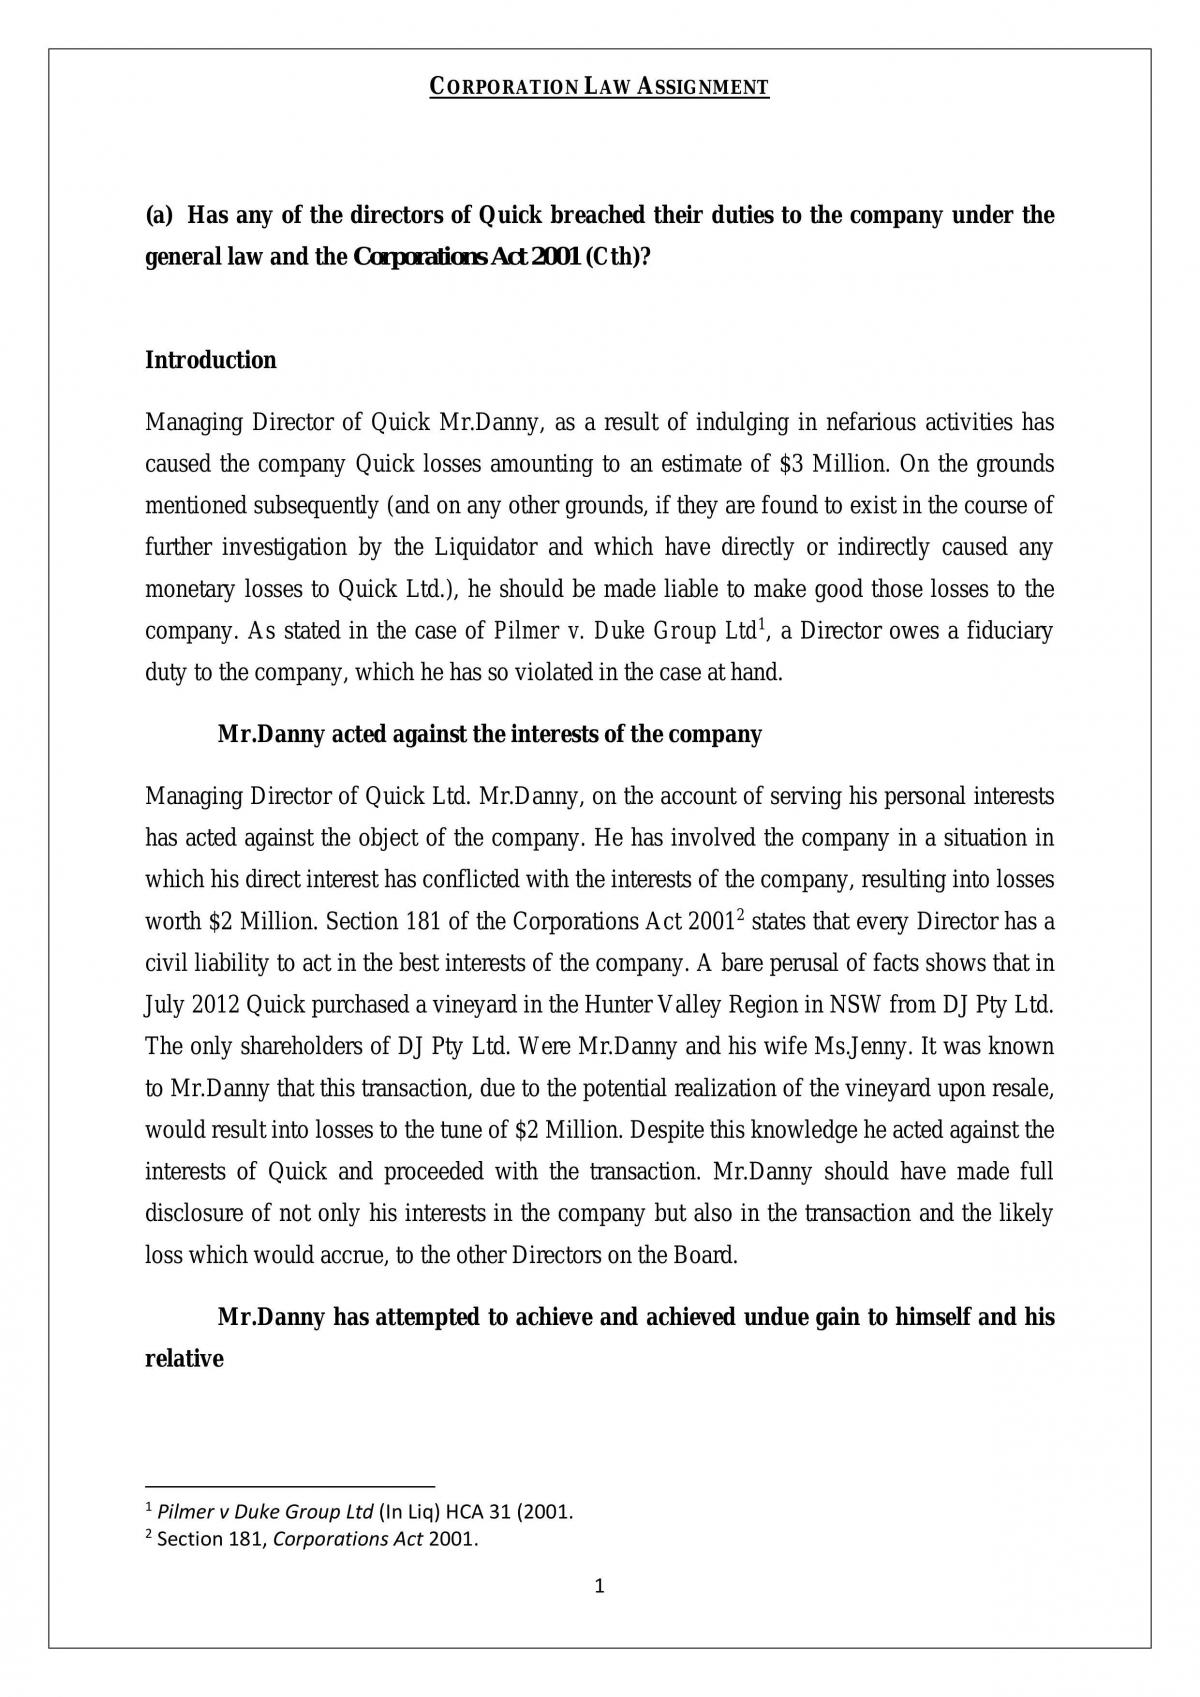 LAW251 Corporation Law Assignment - Page 1